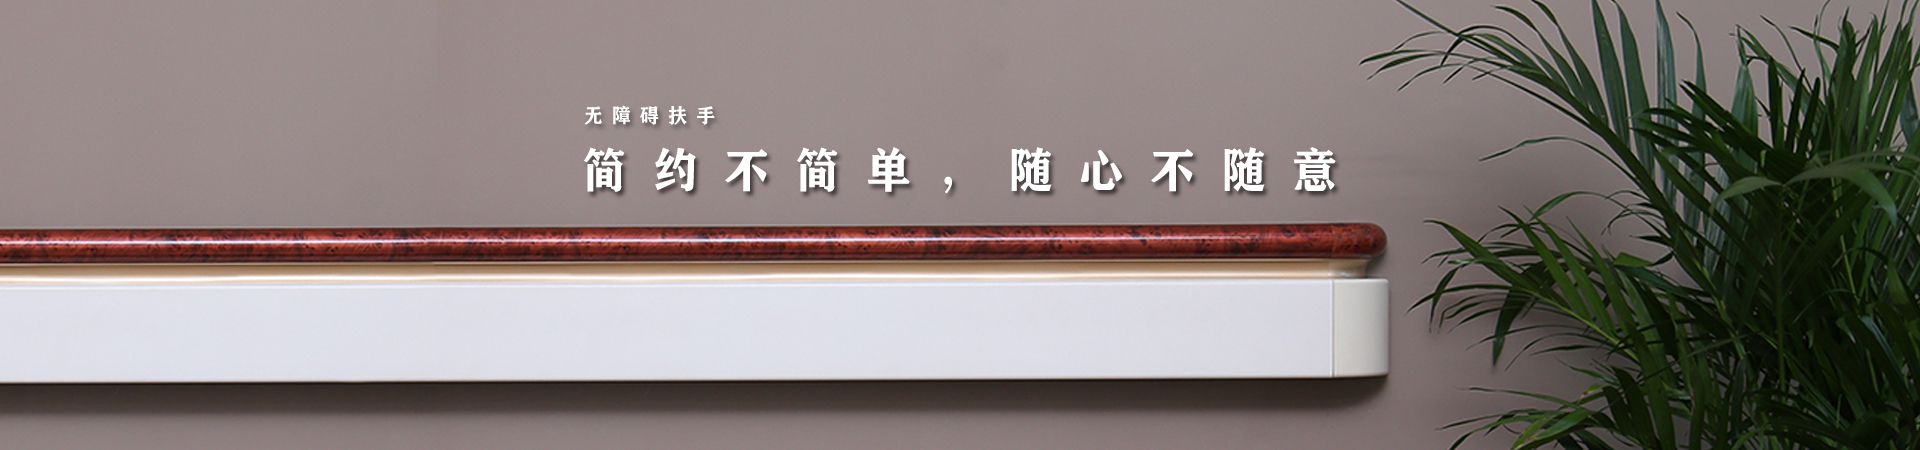 http://www.lianshengfushou.com/data/upload/202101/20210120170021_420.jpg